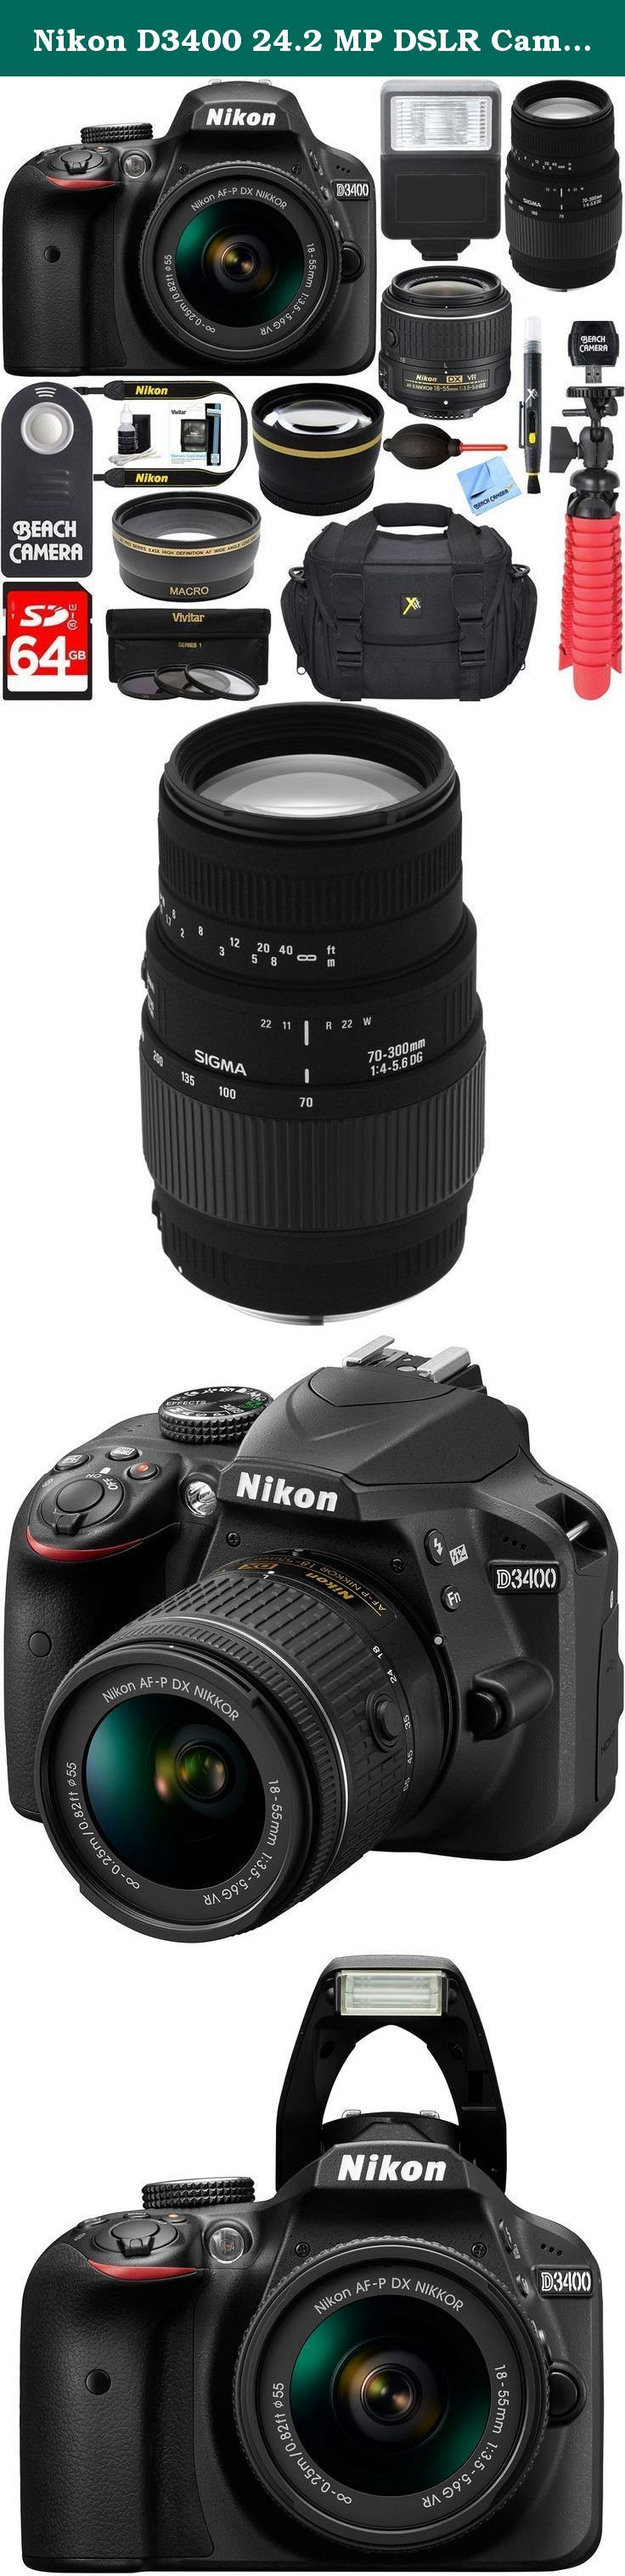 Nikon D3400 24.2 MP DSLR Camera + (18-55mm VR Nikon & 70-300mm SLD DG Sigma Lens Package, Black) + Bundle 64GB SDXC Memory + Photo Bag+Wide Angle Lens + 2x Telephoto+Flash + Remote + Tripod + Filters. 24.2 Megapixel CMOS Sensor Full HD Movie Bluetooth Built-in Authorized Nikon Dealer USA Warranty Welcome to photography.Before the D3400, you chose your smartphone camera for convenience. Zooming was clumsy. Shooting in low light was nearly impossible. Capturing fast action was a game of…